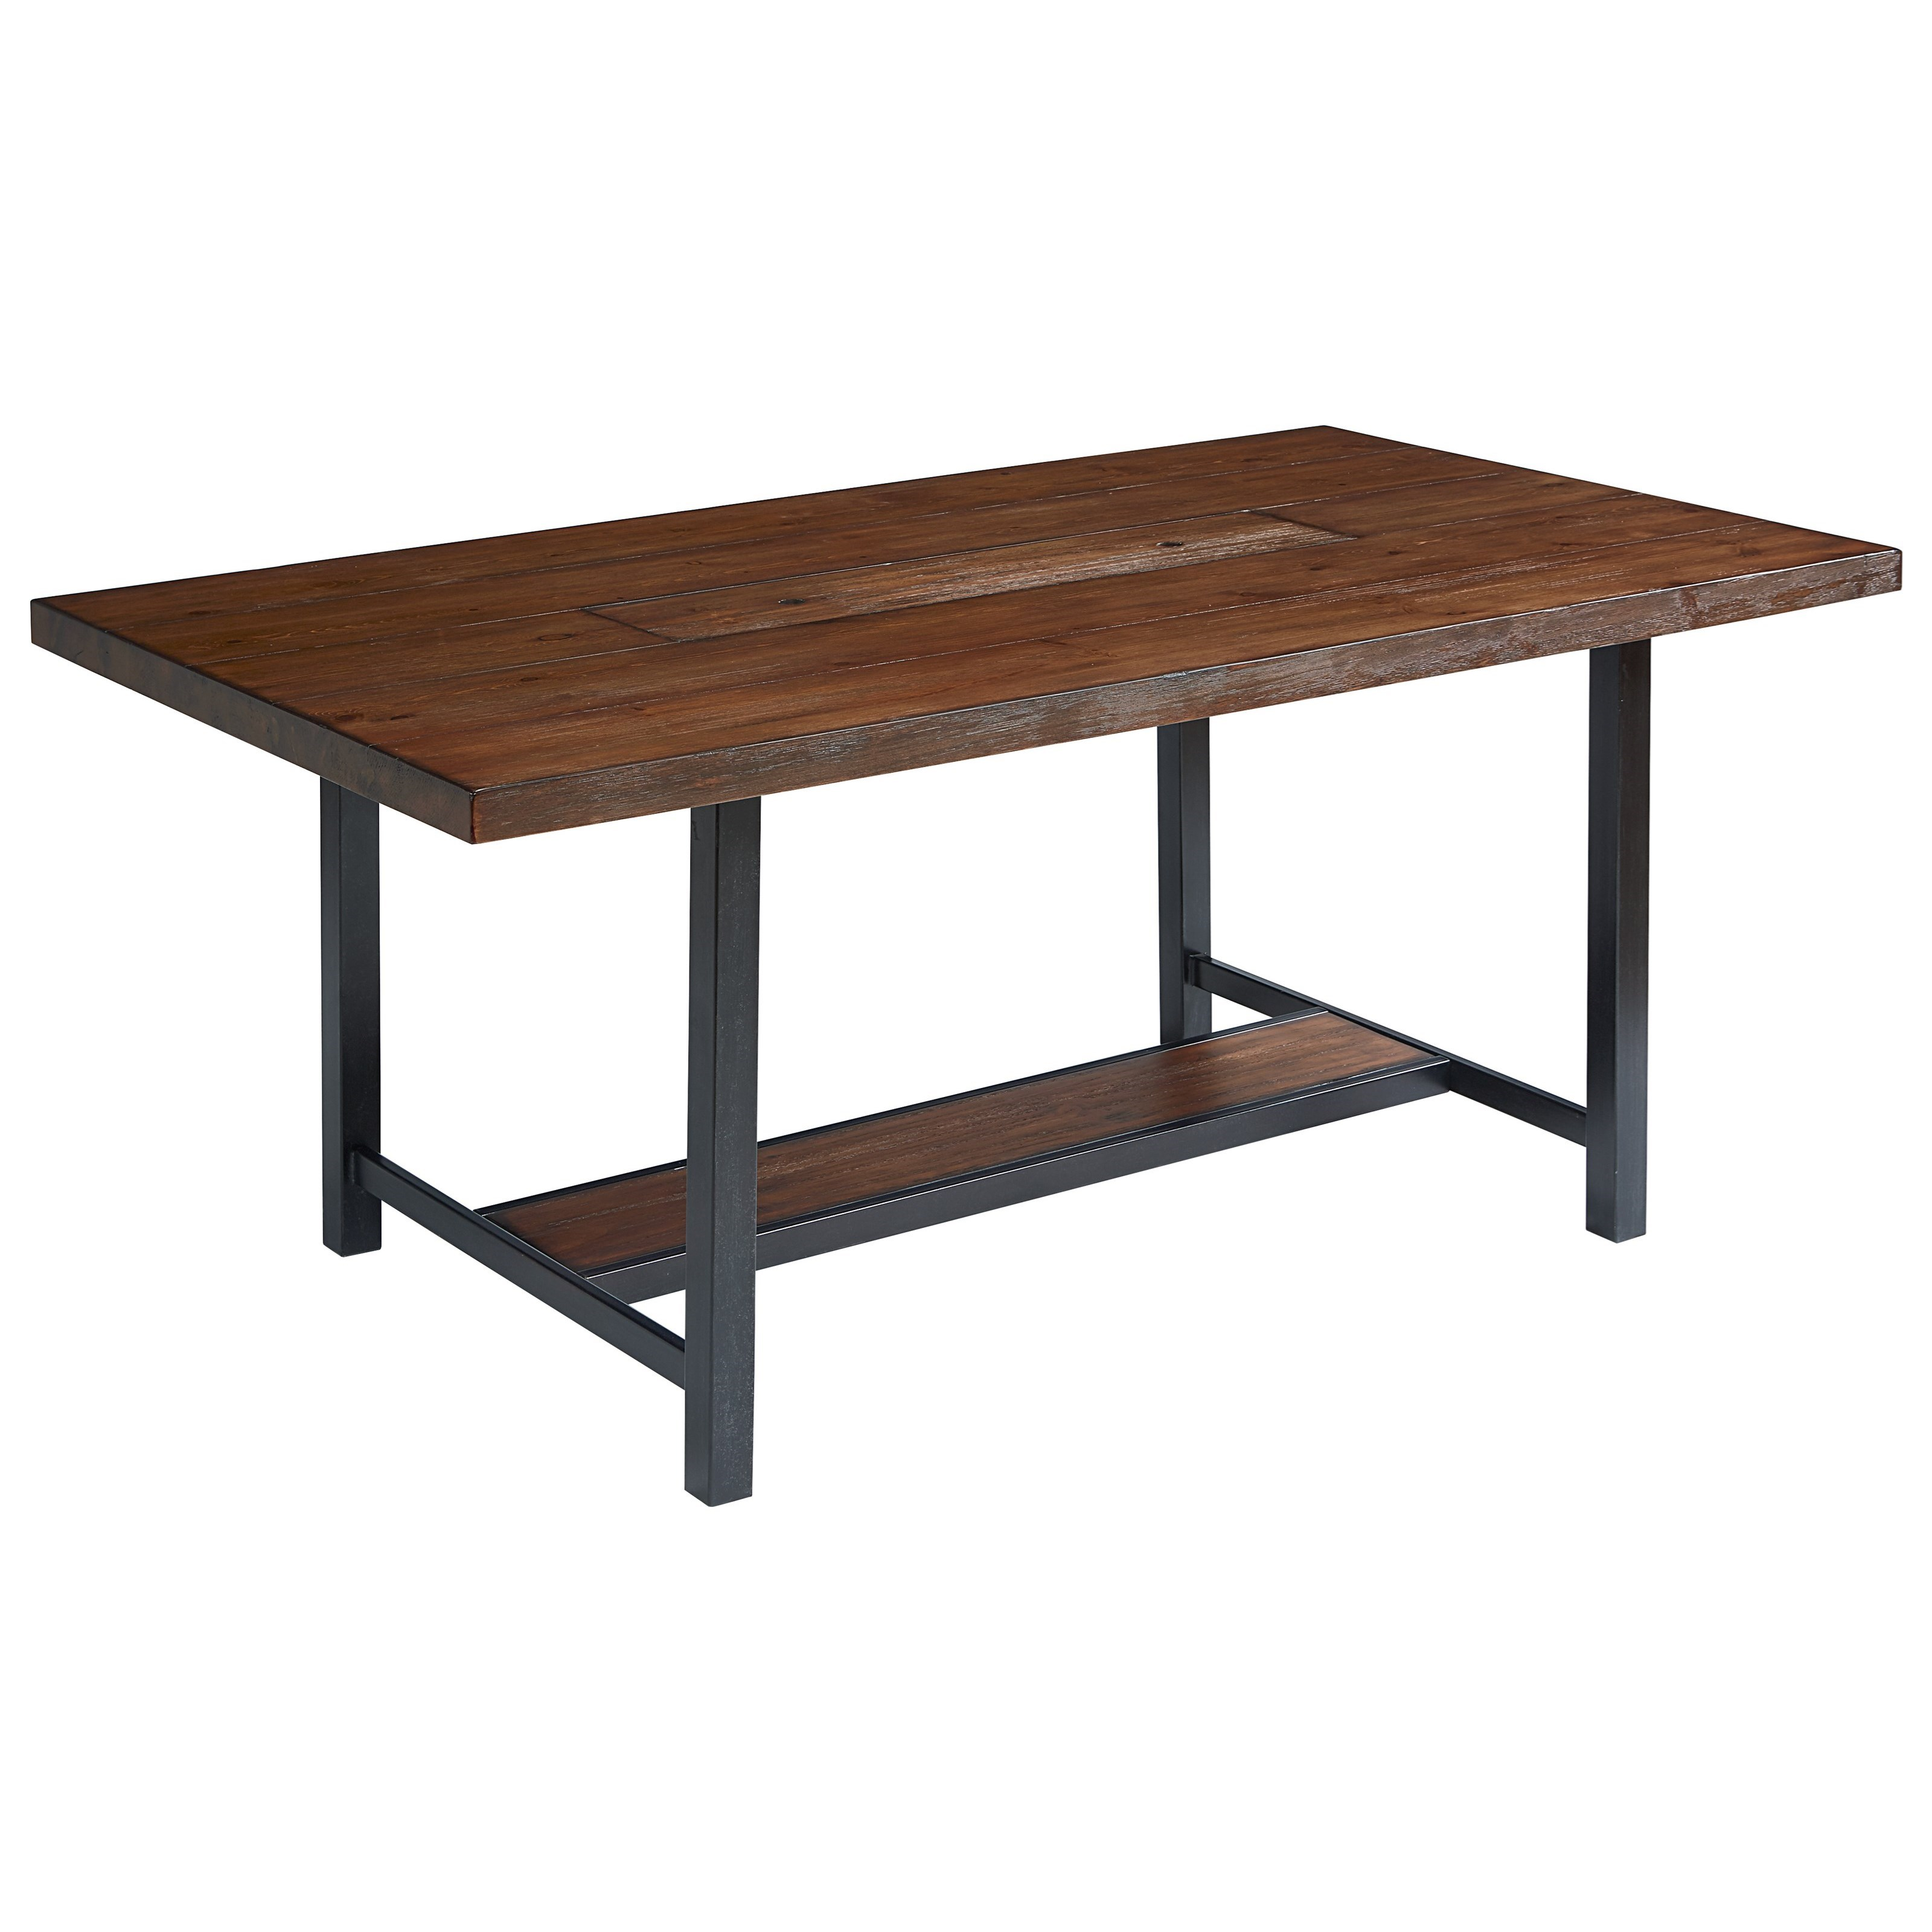 Magnolia Home by Joanna Gaines Industrial 72quot Dining Table  : products2Fmagnoliahome2Fcolor2Findustrial 3974907691010103l b1 from www.jacksonvillefurnituremart.com size 3200 x 3200 jpeg 543kB